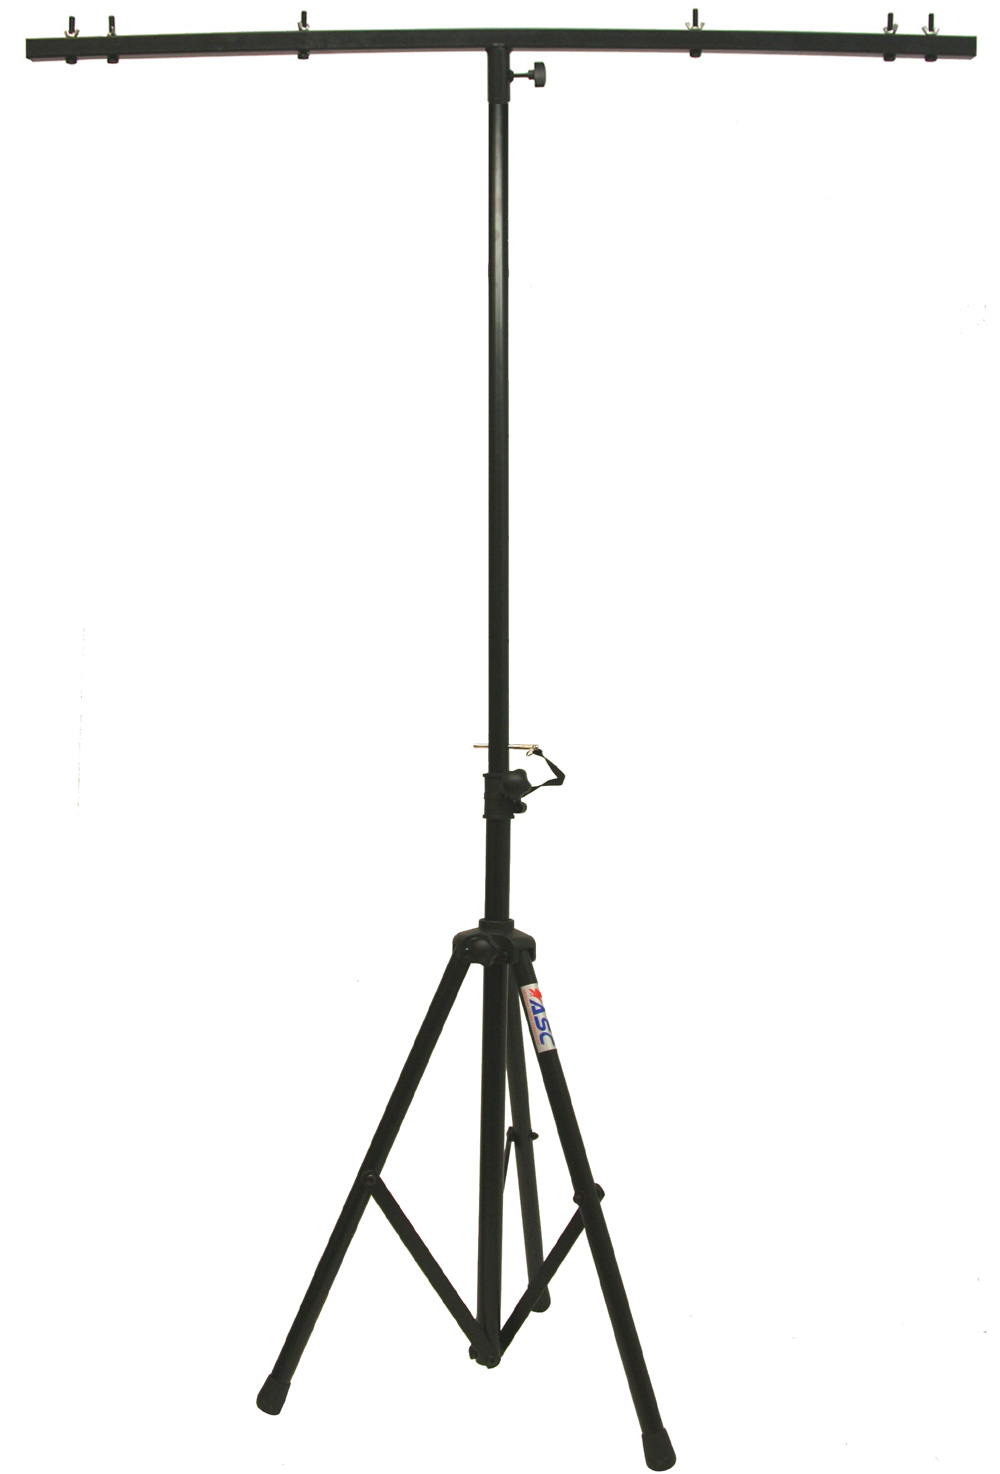 Dj pro audio lighting fixture tripod stand t bar light truss dj pro audio lighting fixture tripod stand t bar light truss 4 c clamps arubaitofo Image collections